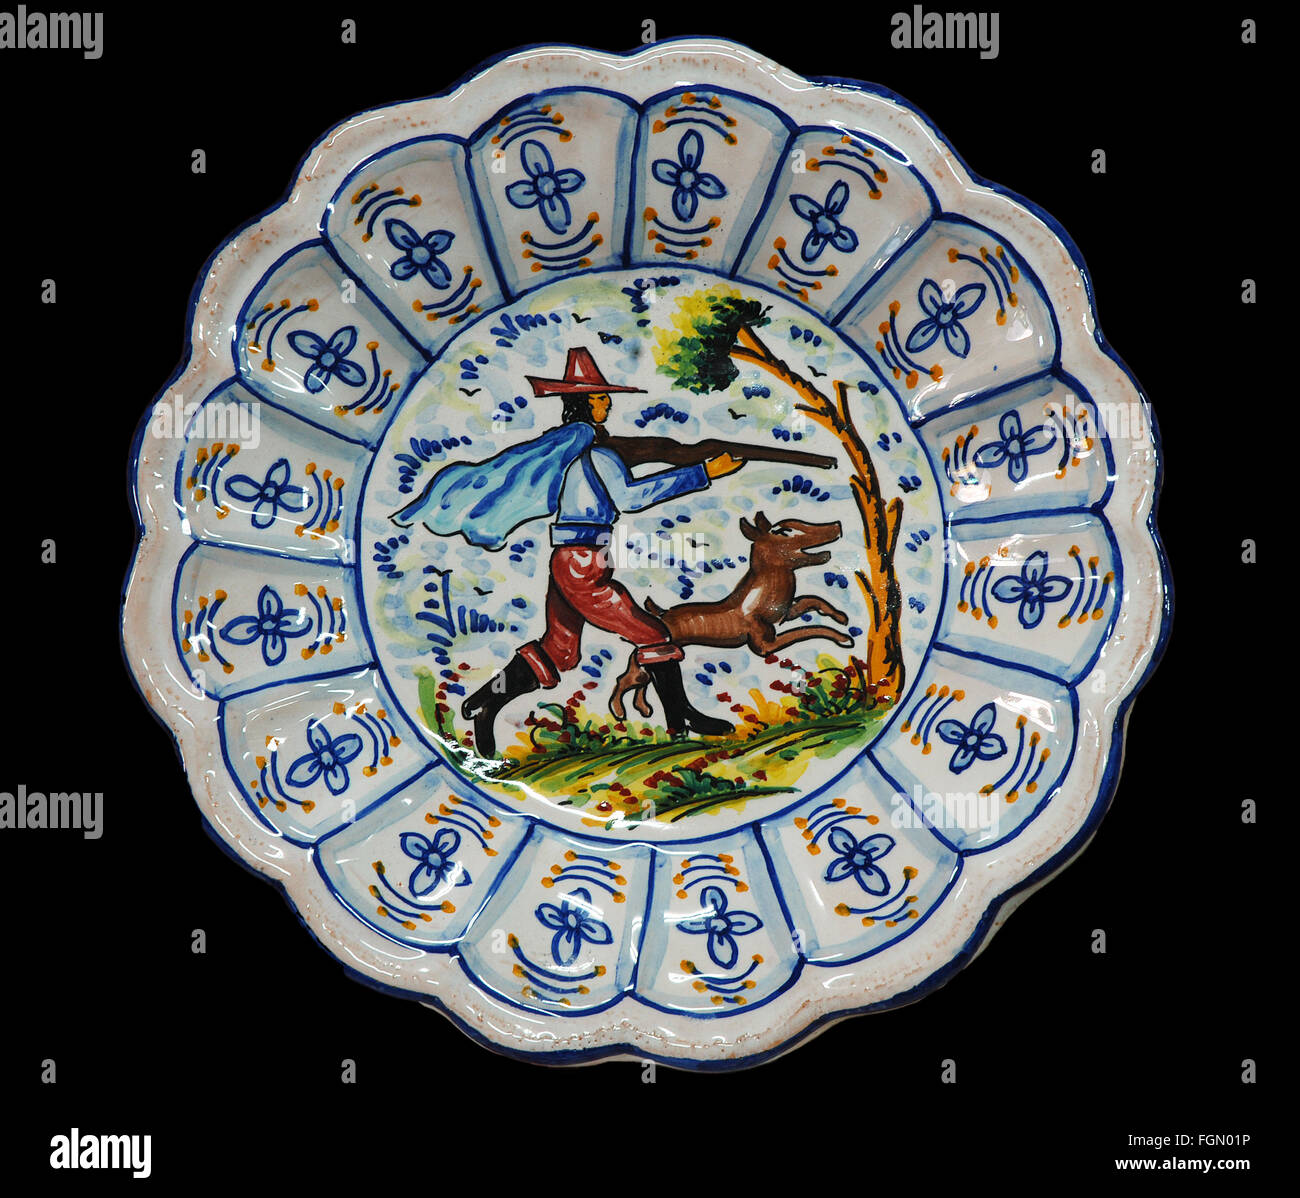 Triana ceramic plate Seville Region of Andalusia Spain Europe - Stock Image & Painted Plate Souvenirs Stock Photos u0026 Painted Plate Souvenirs Stock ...